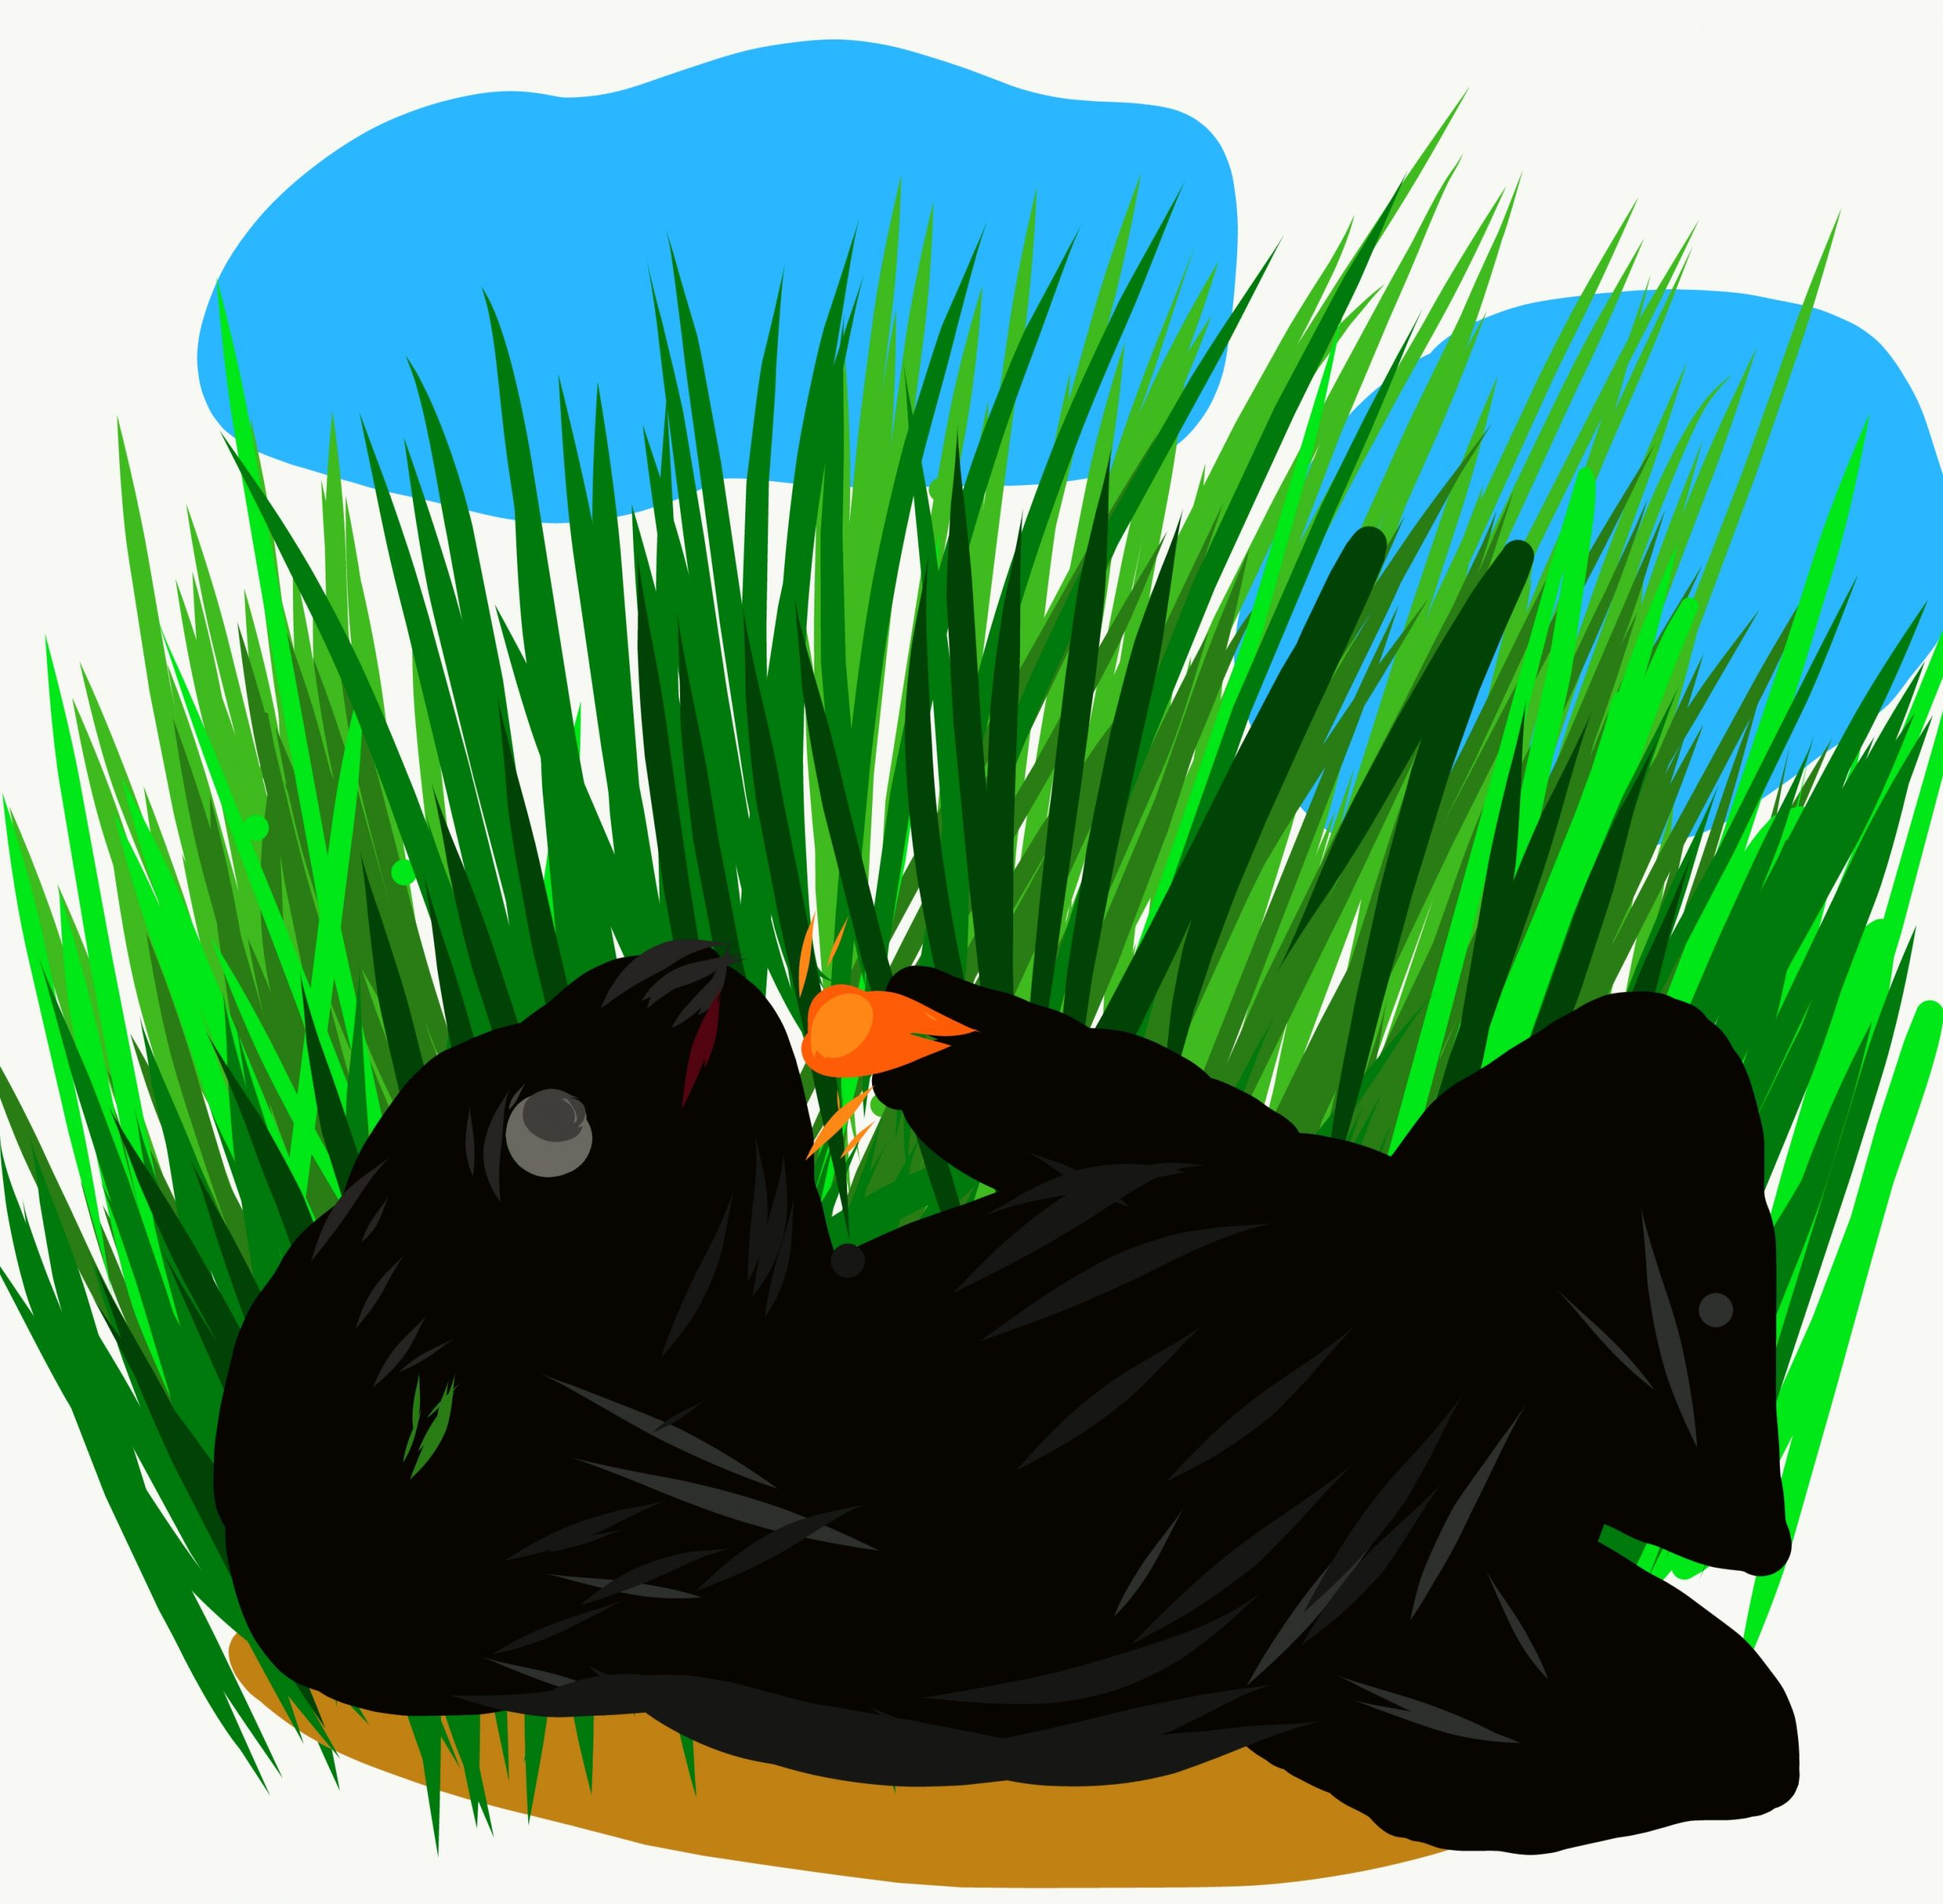 Grass and an animals illustration